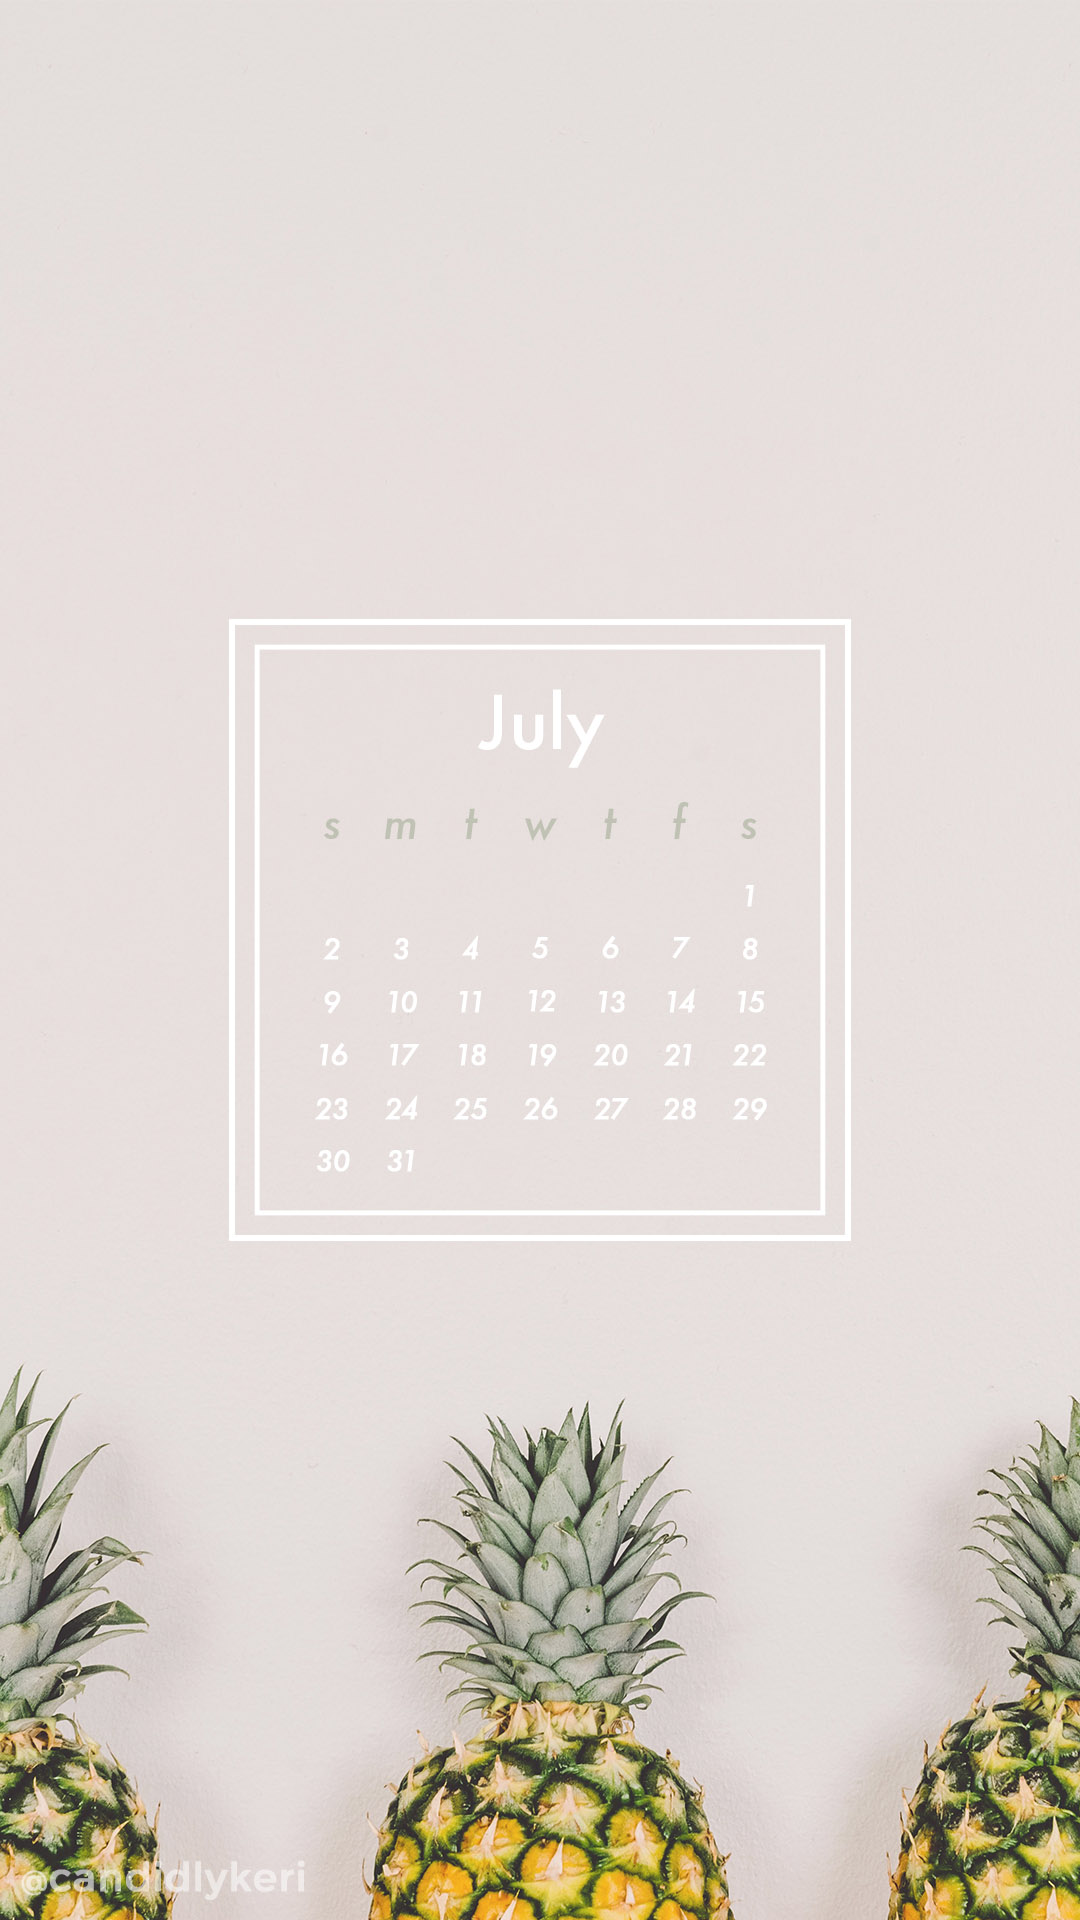 Pineapple-fun-geo-shape-summer-July-calendar-you-can-download-for-free-on-the-blog-F-wallpaper-wpc9008489